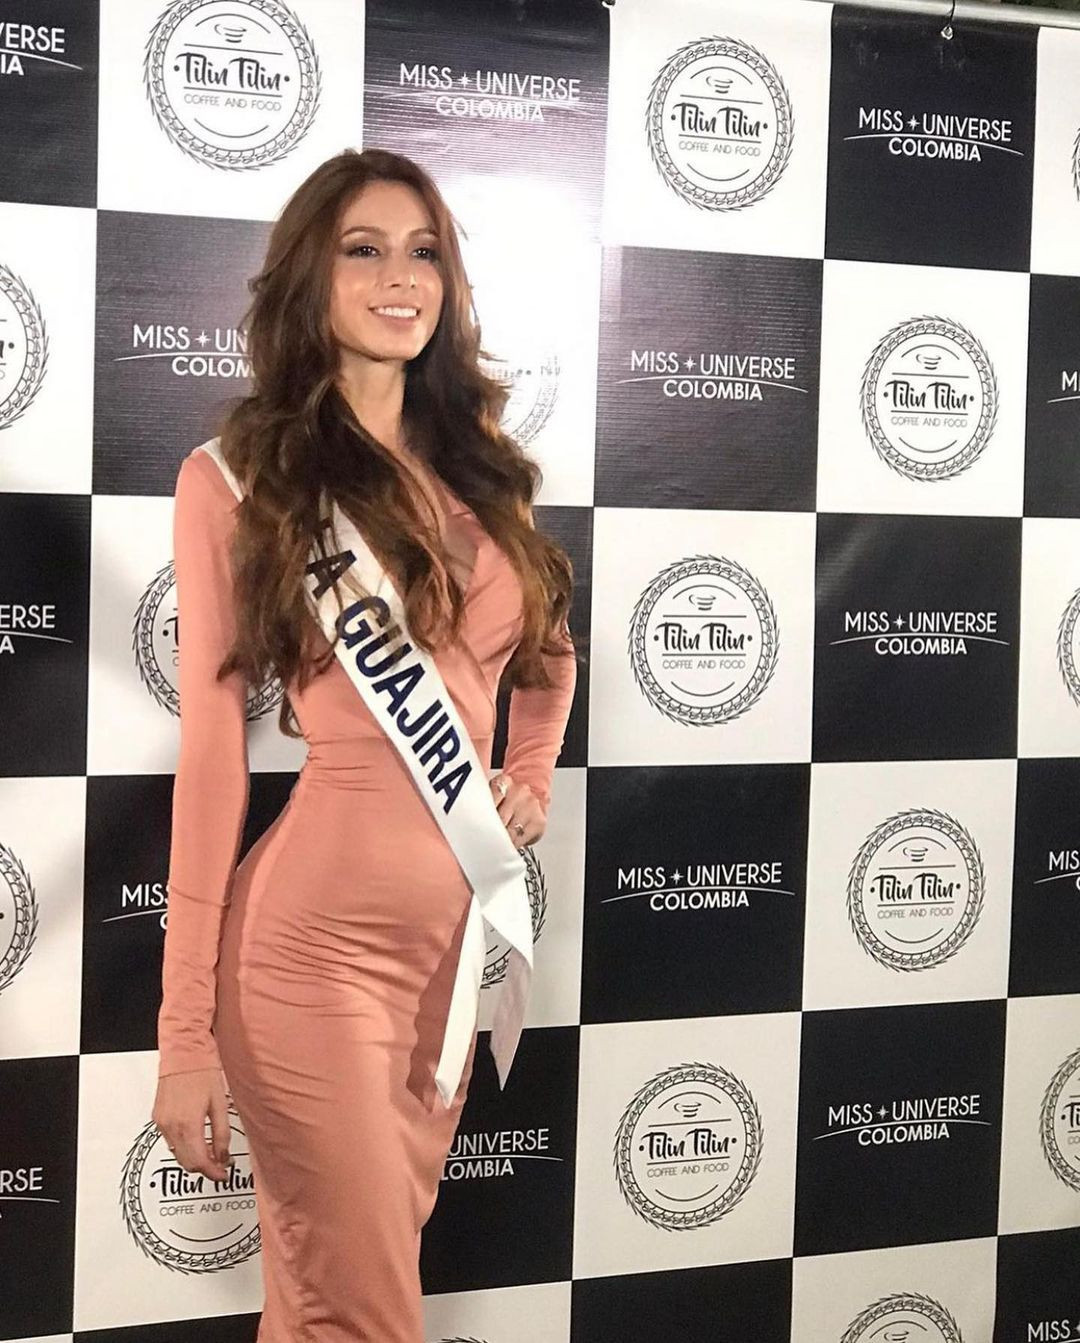 candidatas a miss universe colombia 2021. final: 18 oct. sede: neiva. - Página 5 52Si8v